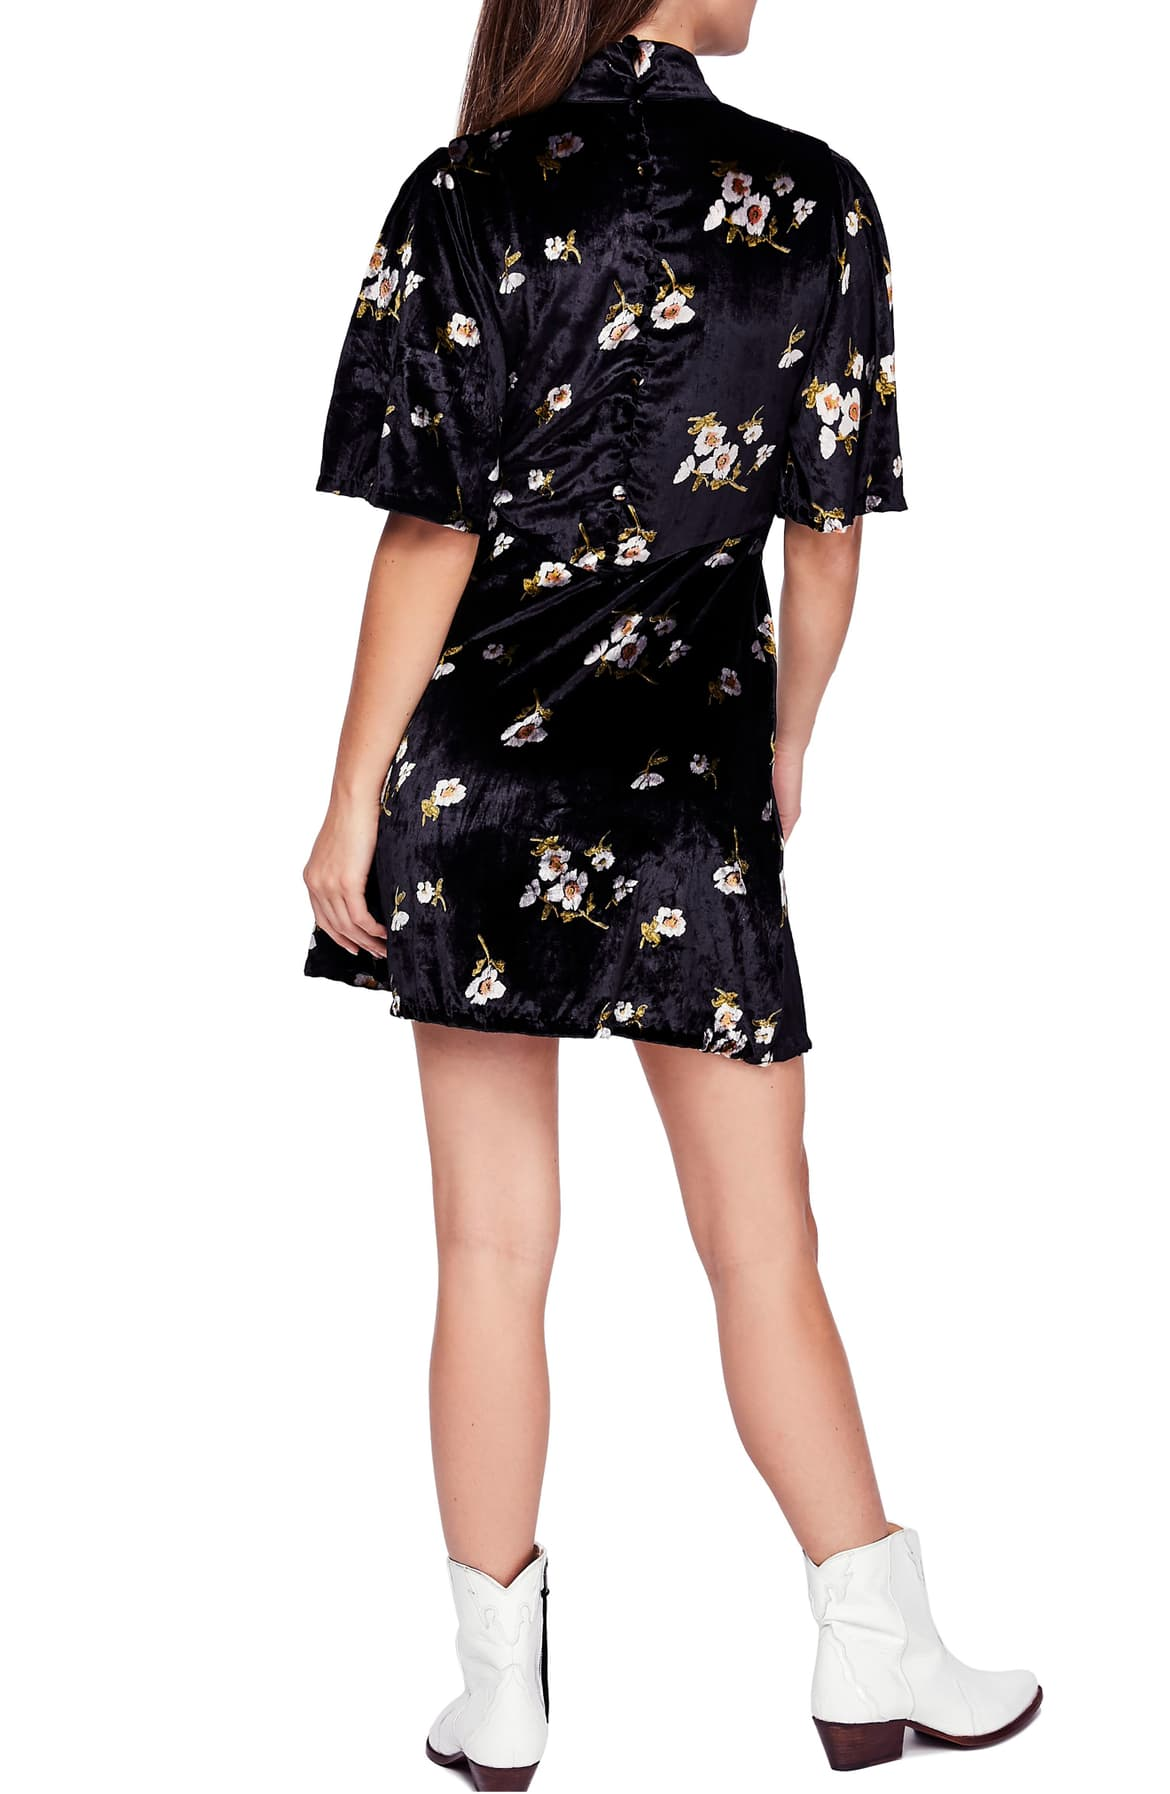 Free People Velvet Floral-Print Dress Black 4 - Gear Relapse